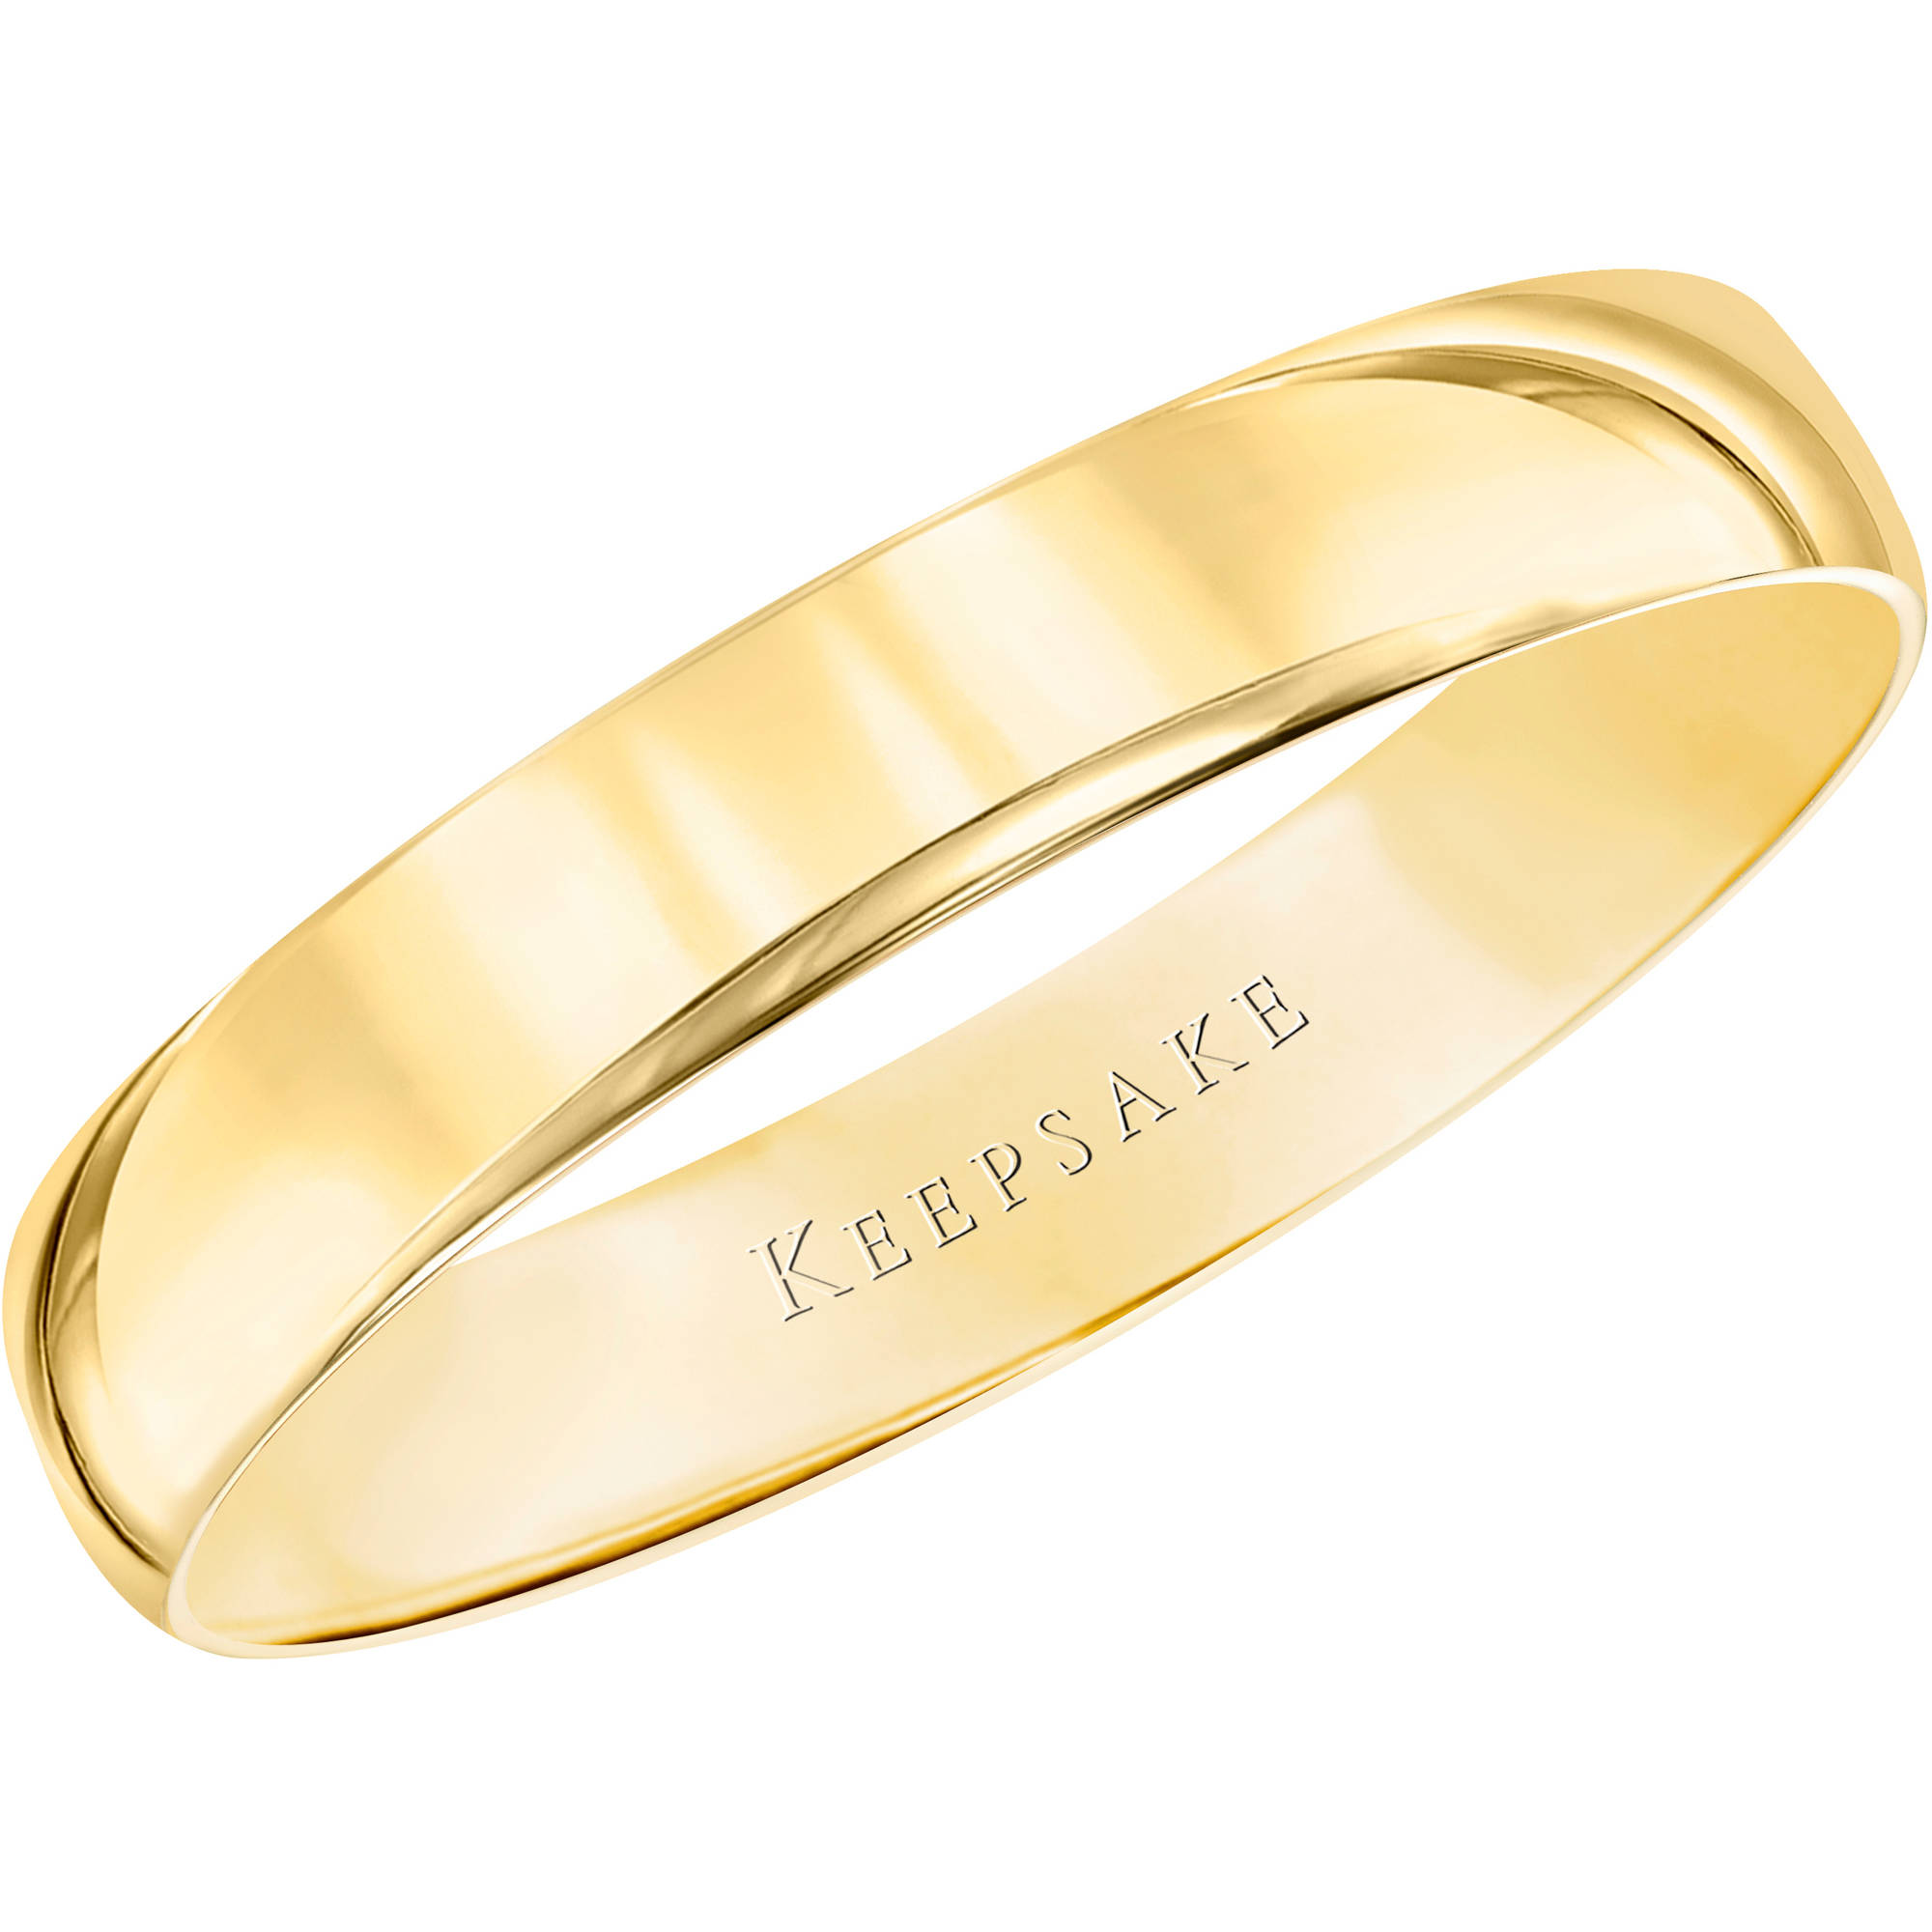 Keepsake 10kt Yellow Gold Wedding Band With High-Polish Finish, 4mm